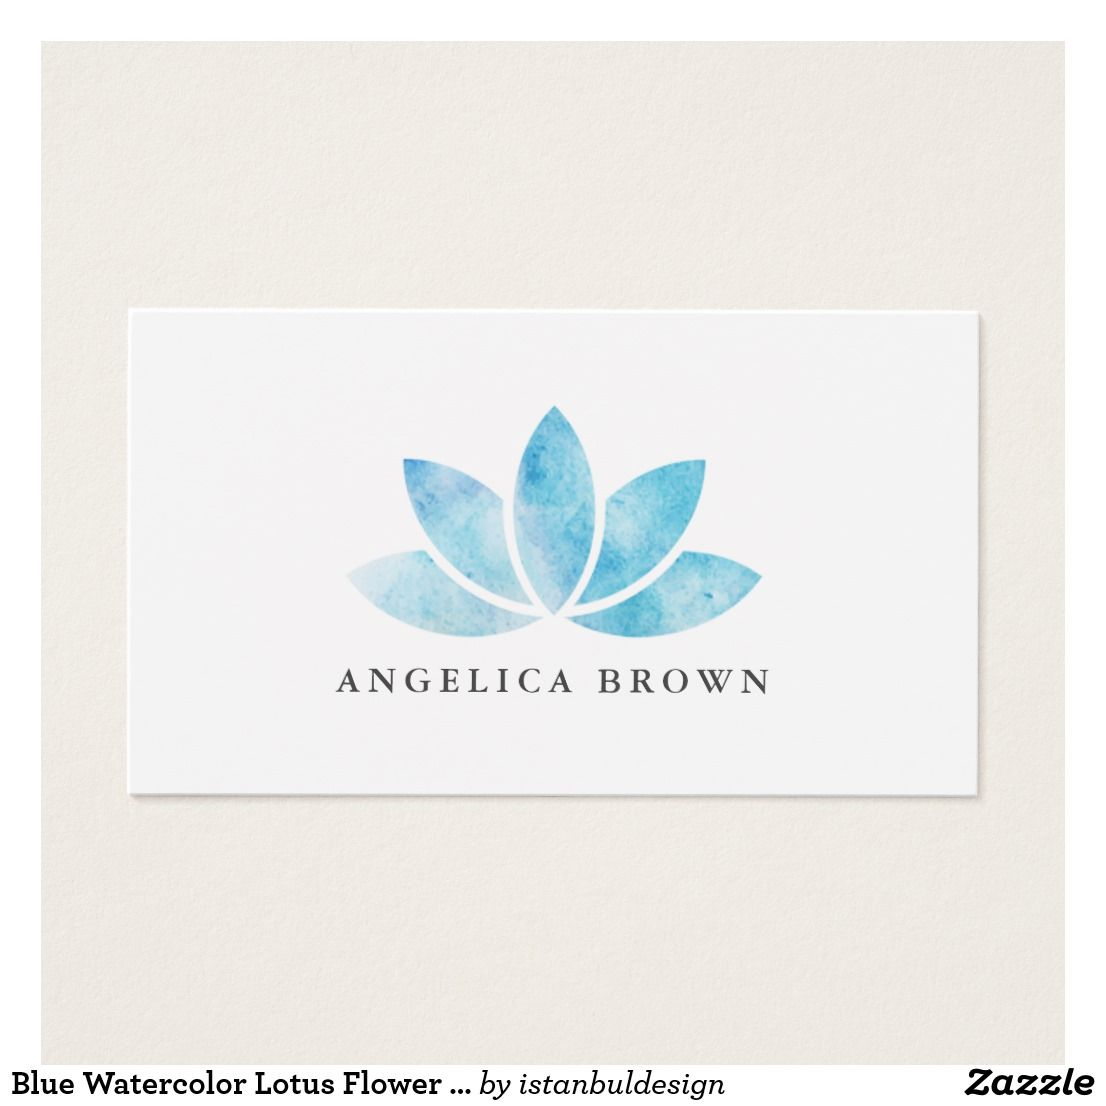 Blue Watercolor Lotus Flower Business Card | Business cards